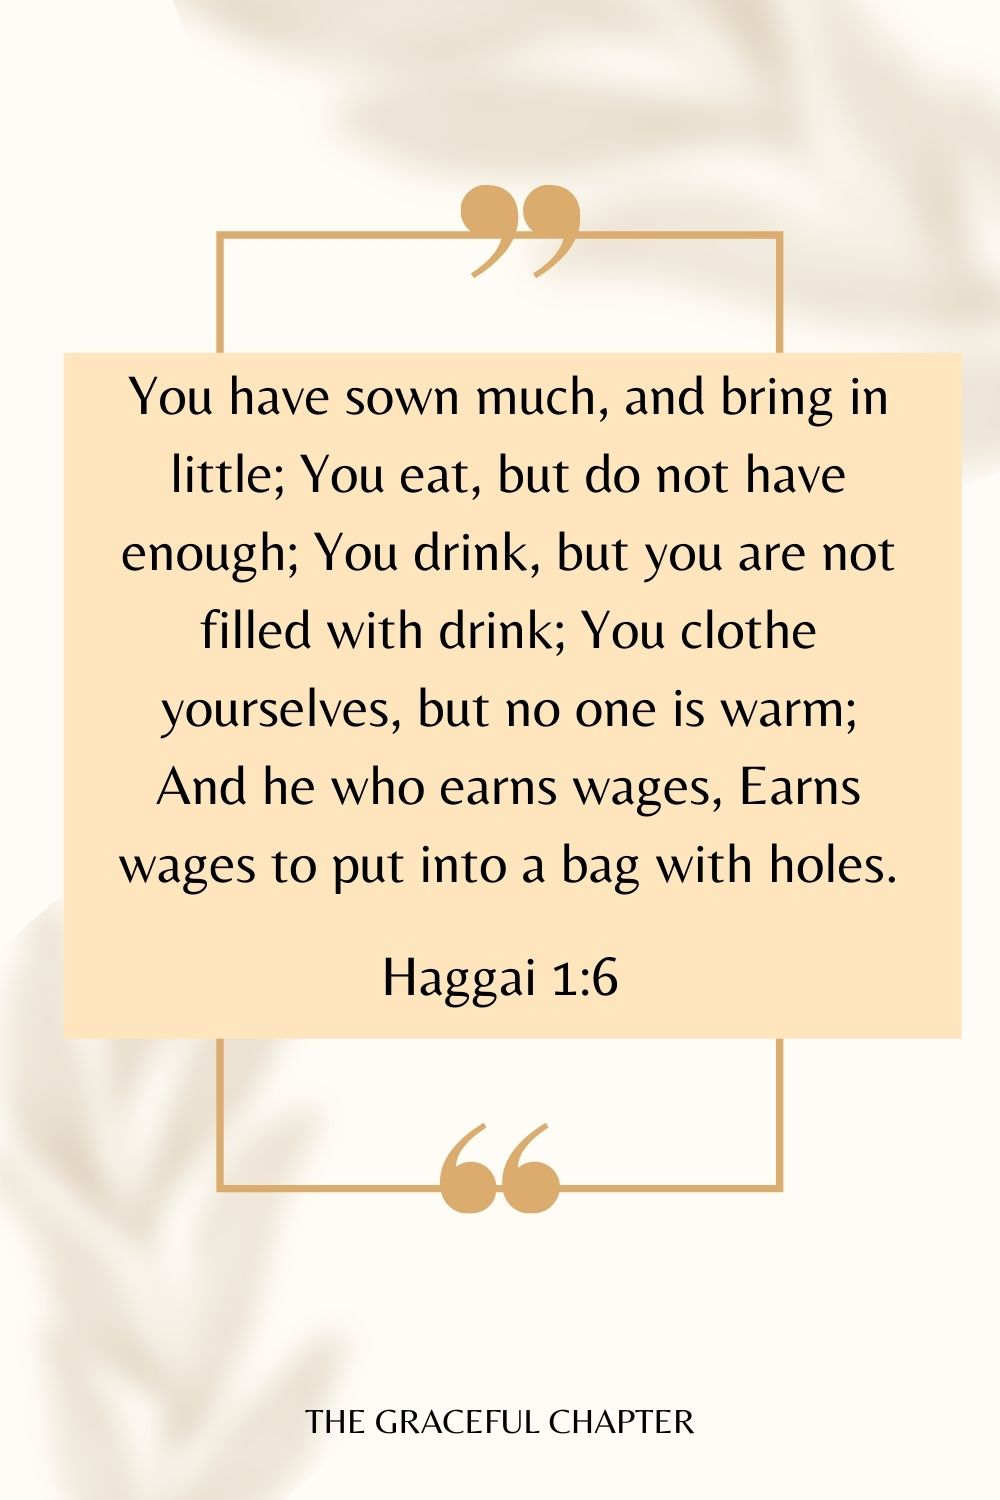 You have sown much, and bring in little; You eat, but do not have enough; You drink, but you are not filled with drink; You clothe yourselves, but no one is warm; And he who earns wages, Earns wages to put into a bag with holes. Haggai 1:6